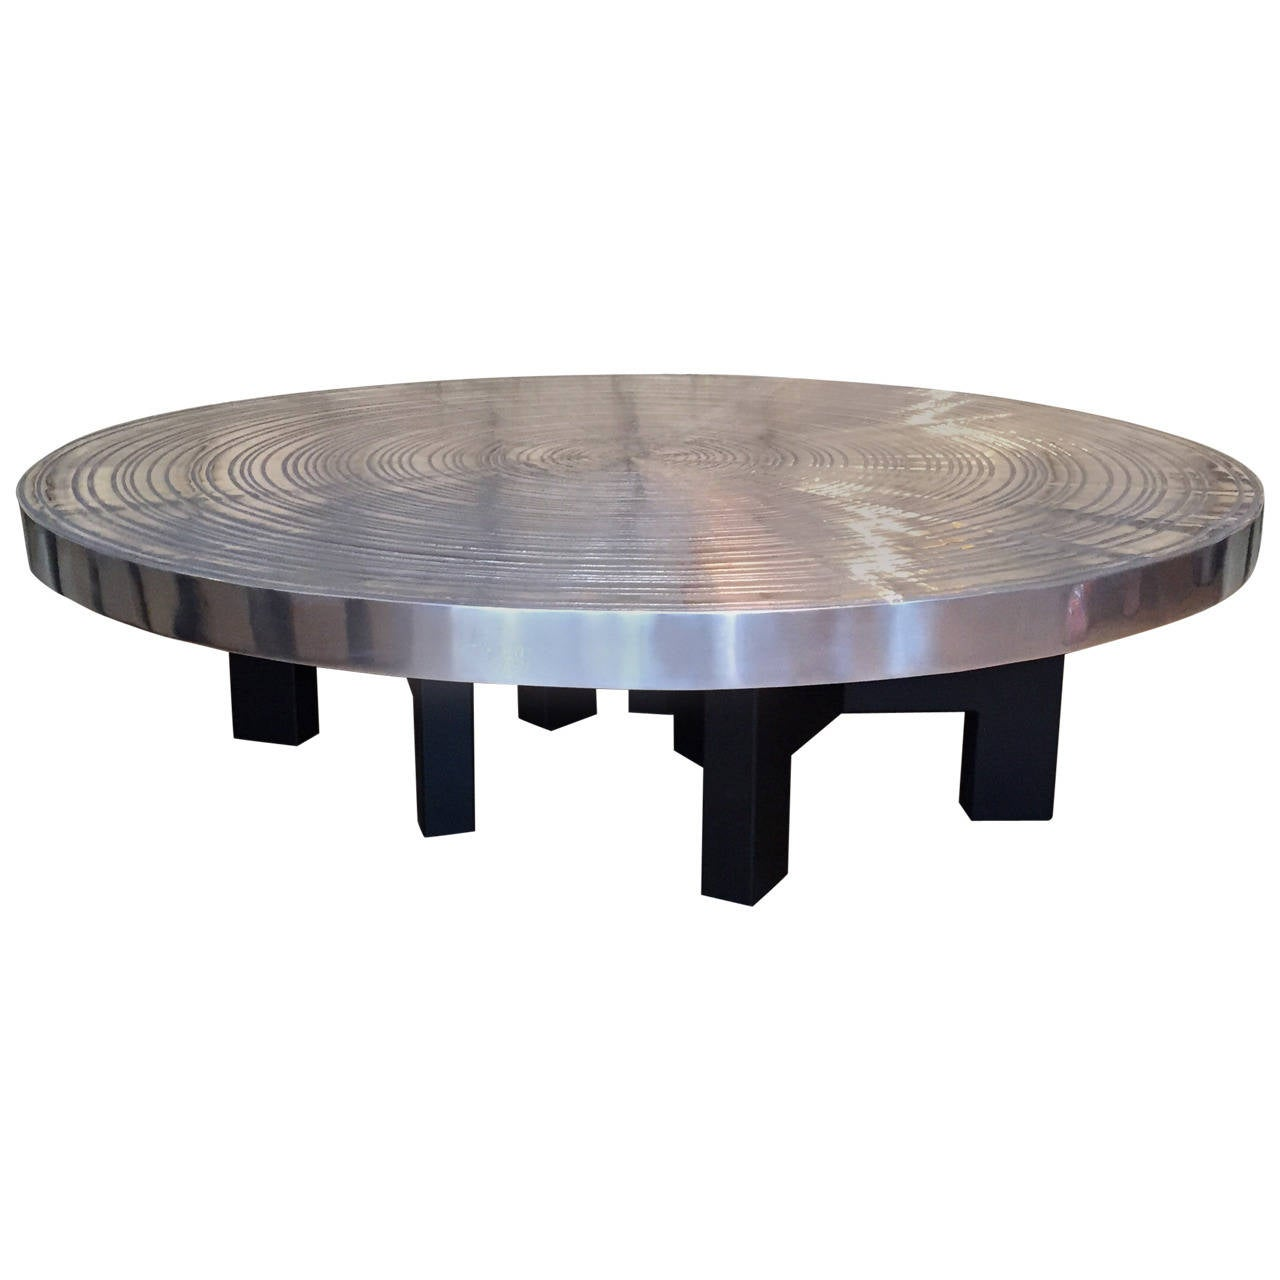 large aluminium coffee table by ado chale goutte d 39 eau at 1stdibs. Black Bedroom Furniture Sets. Home Design Ideas